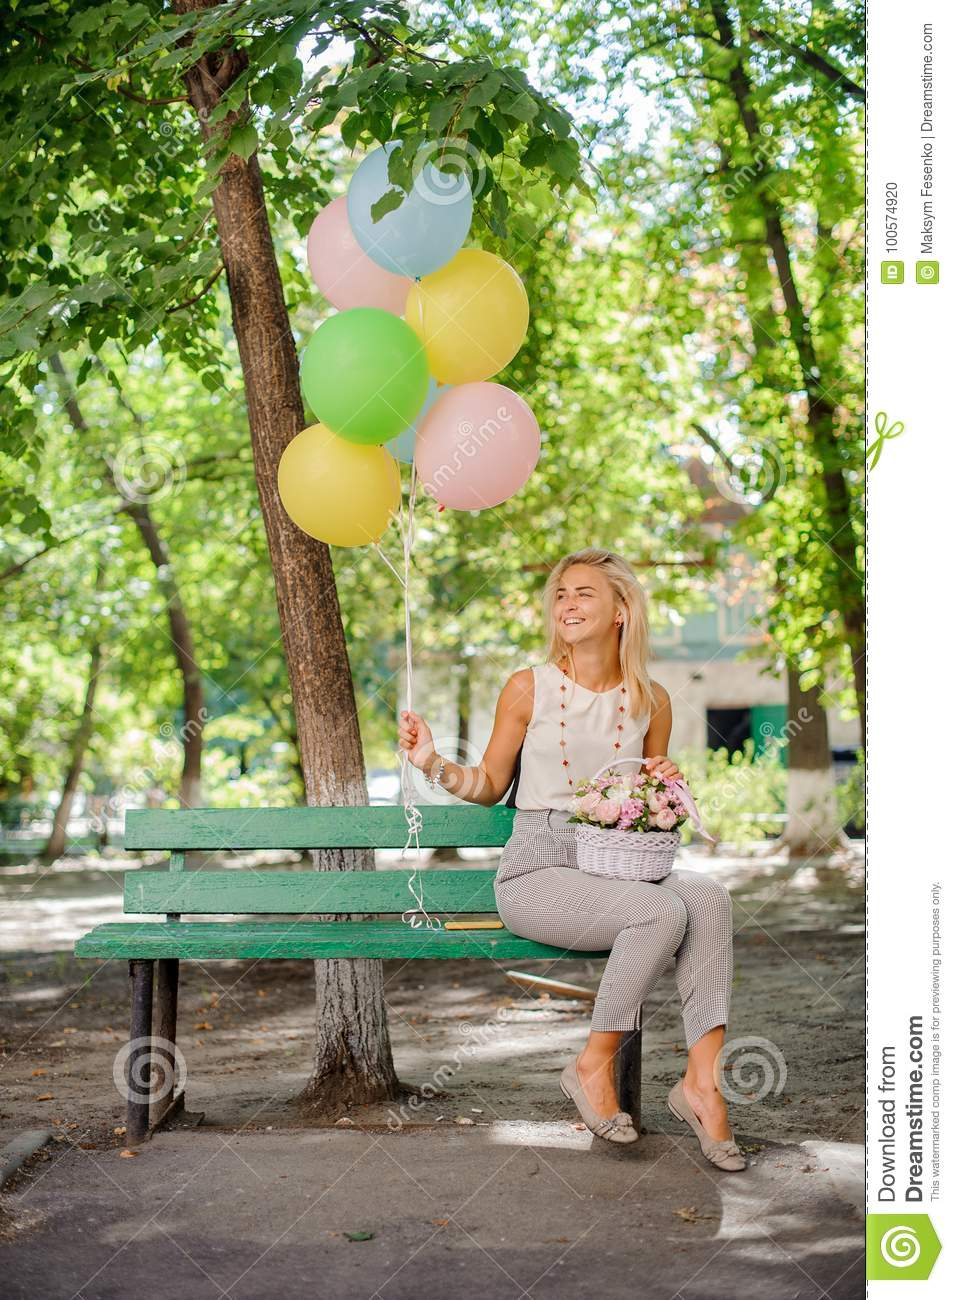 Happy birthday girl with a bouquet of pretty flowers and balloons happy birthday girl with a bouquet of pretty flowers and balloons izmirmasajfo